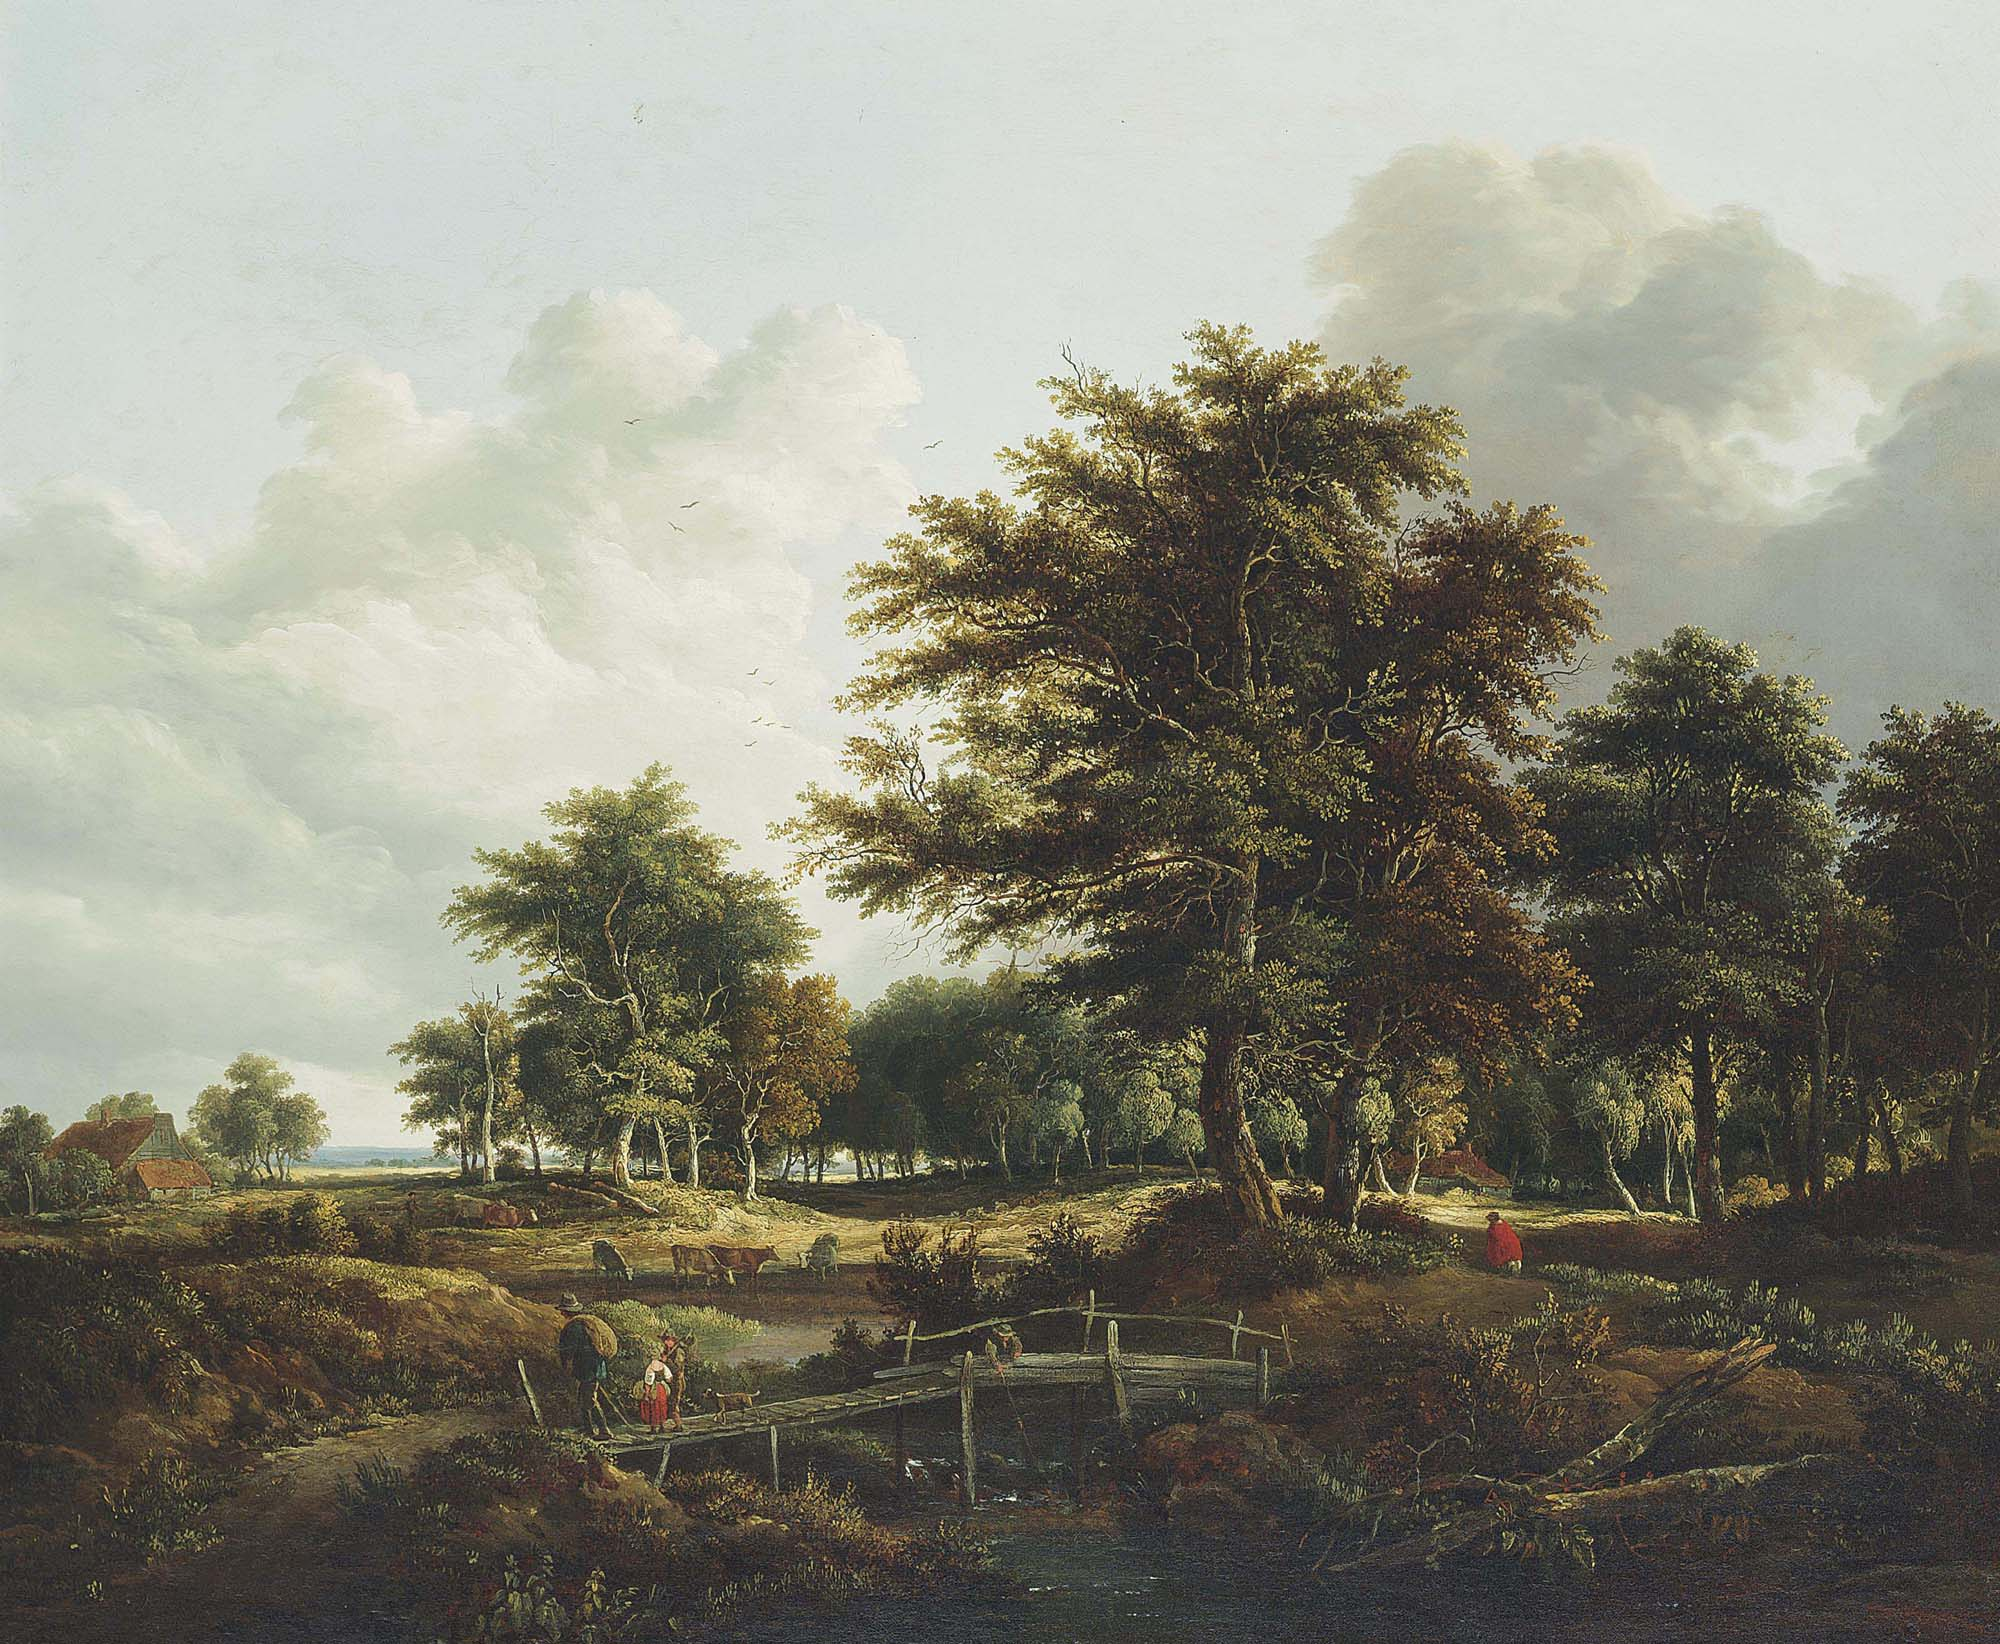 A wooded landscape with travelers on a bridge